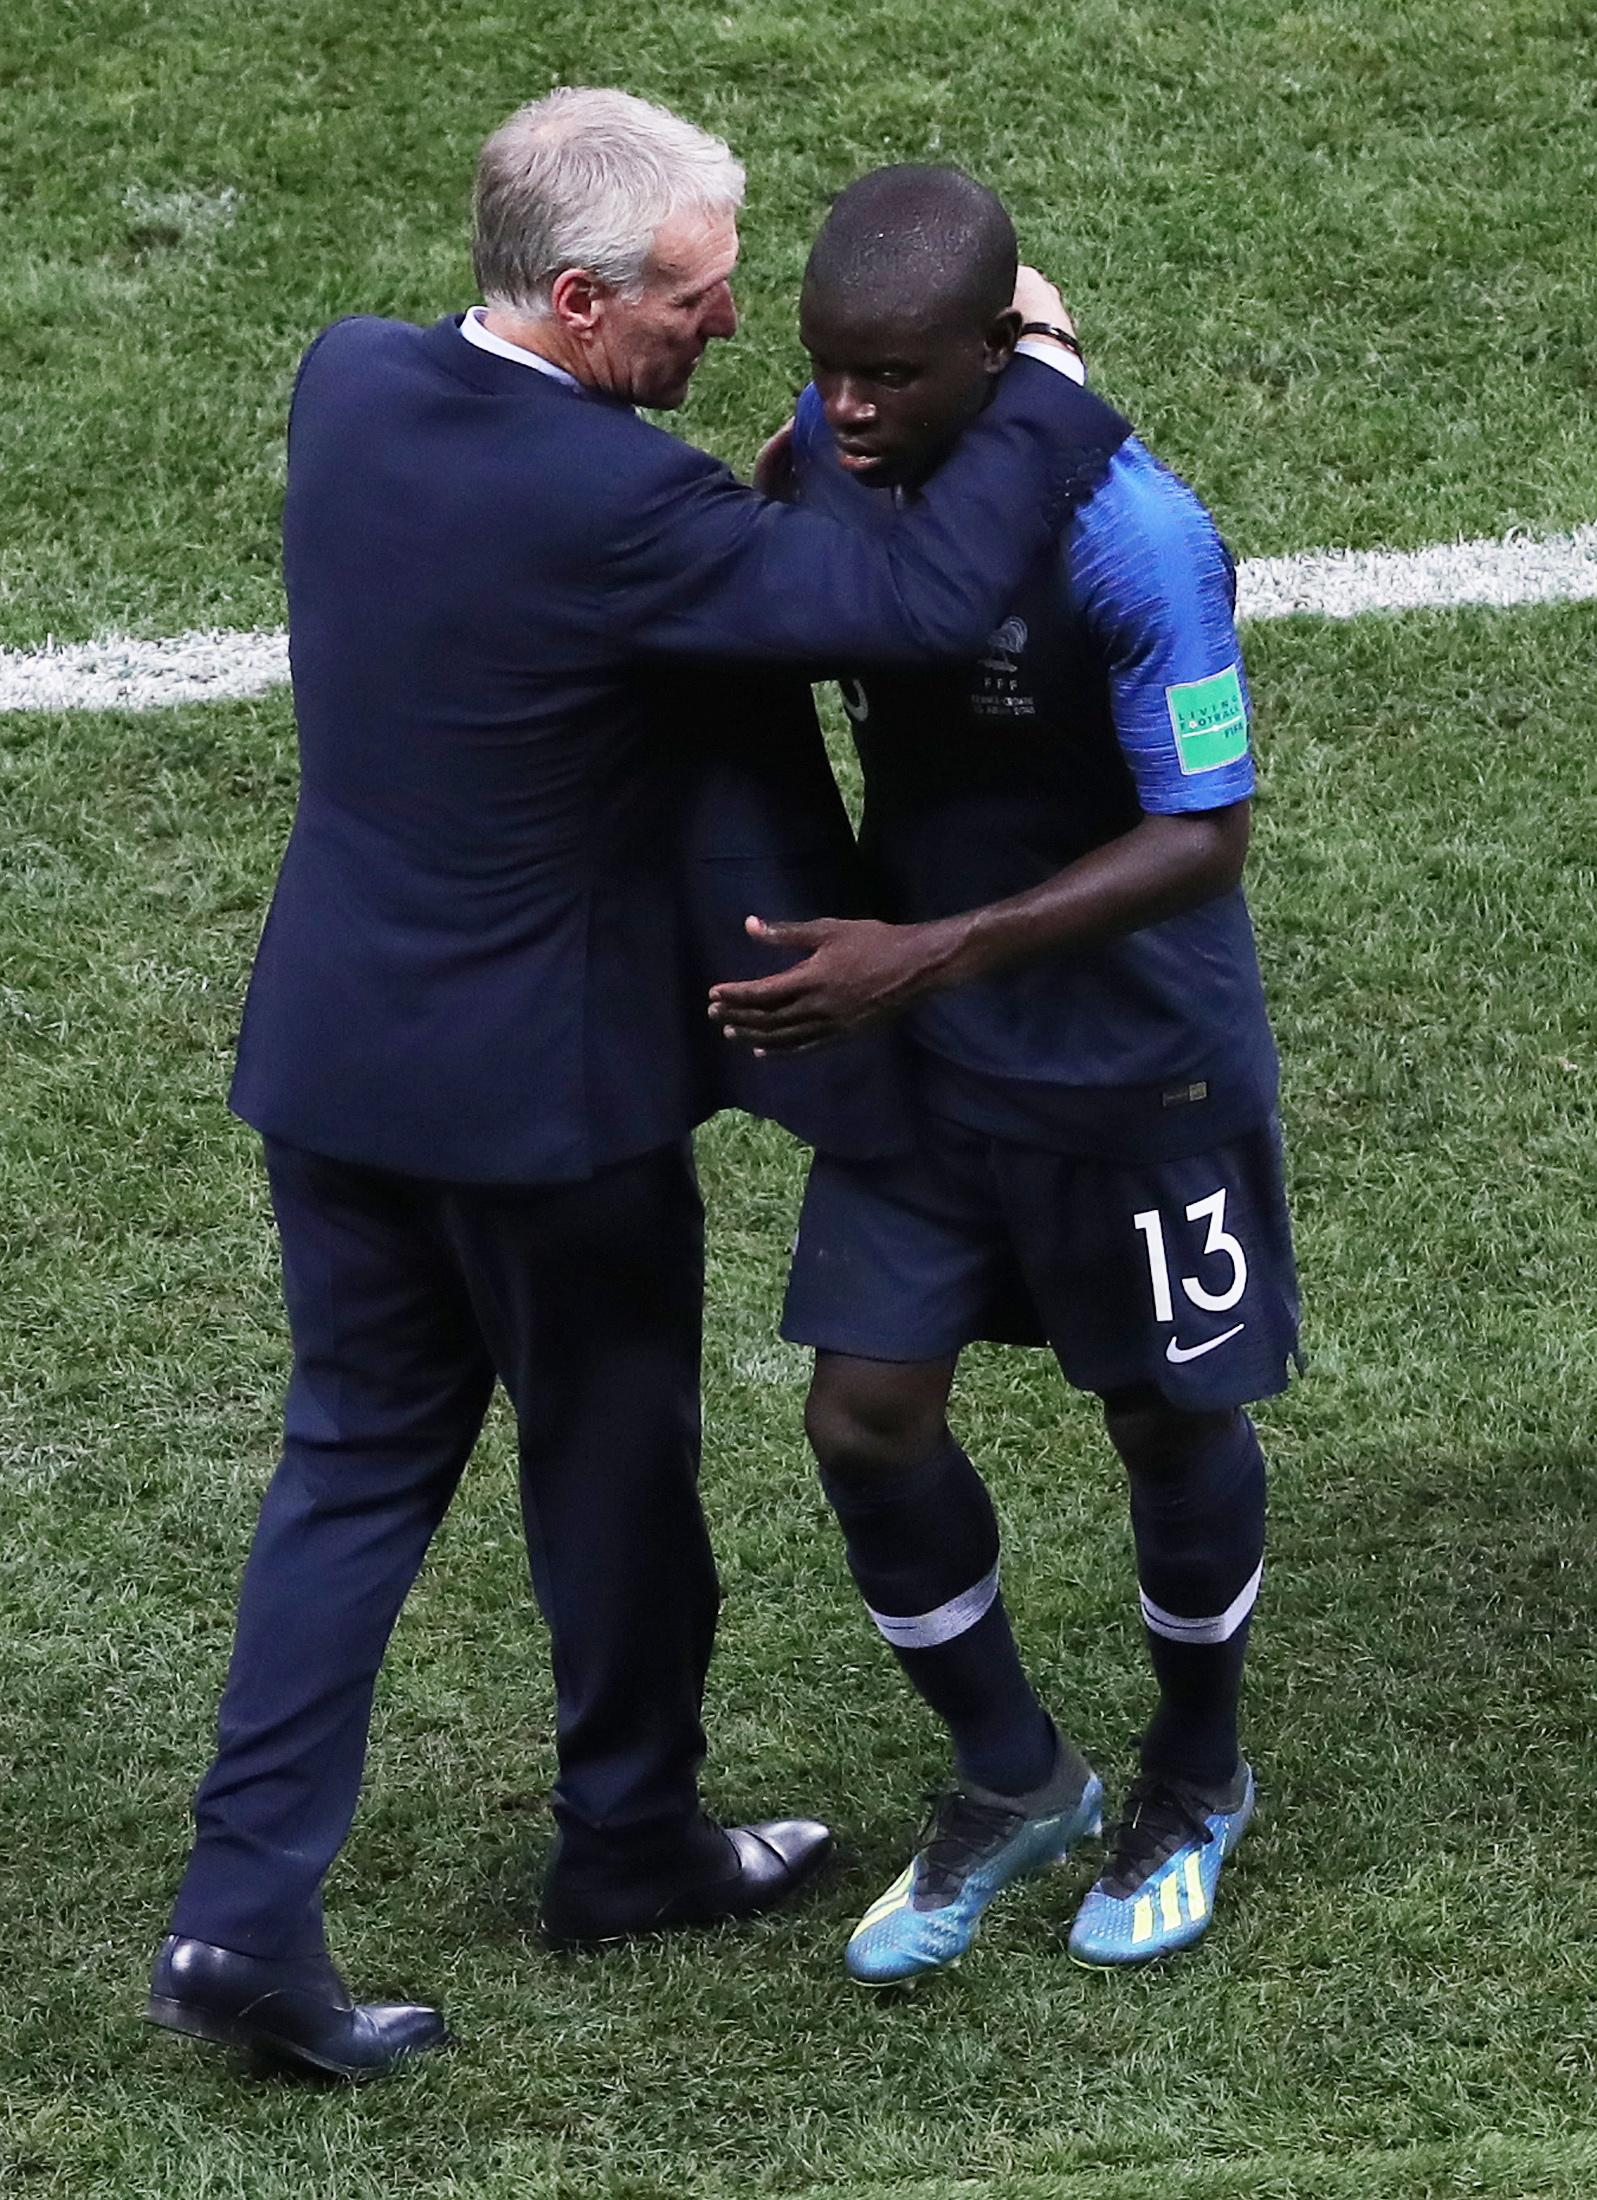 Kante is one of Deschamps' most trusted players